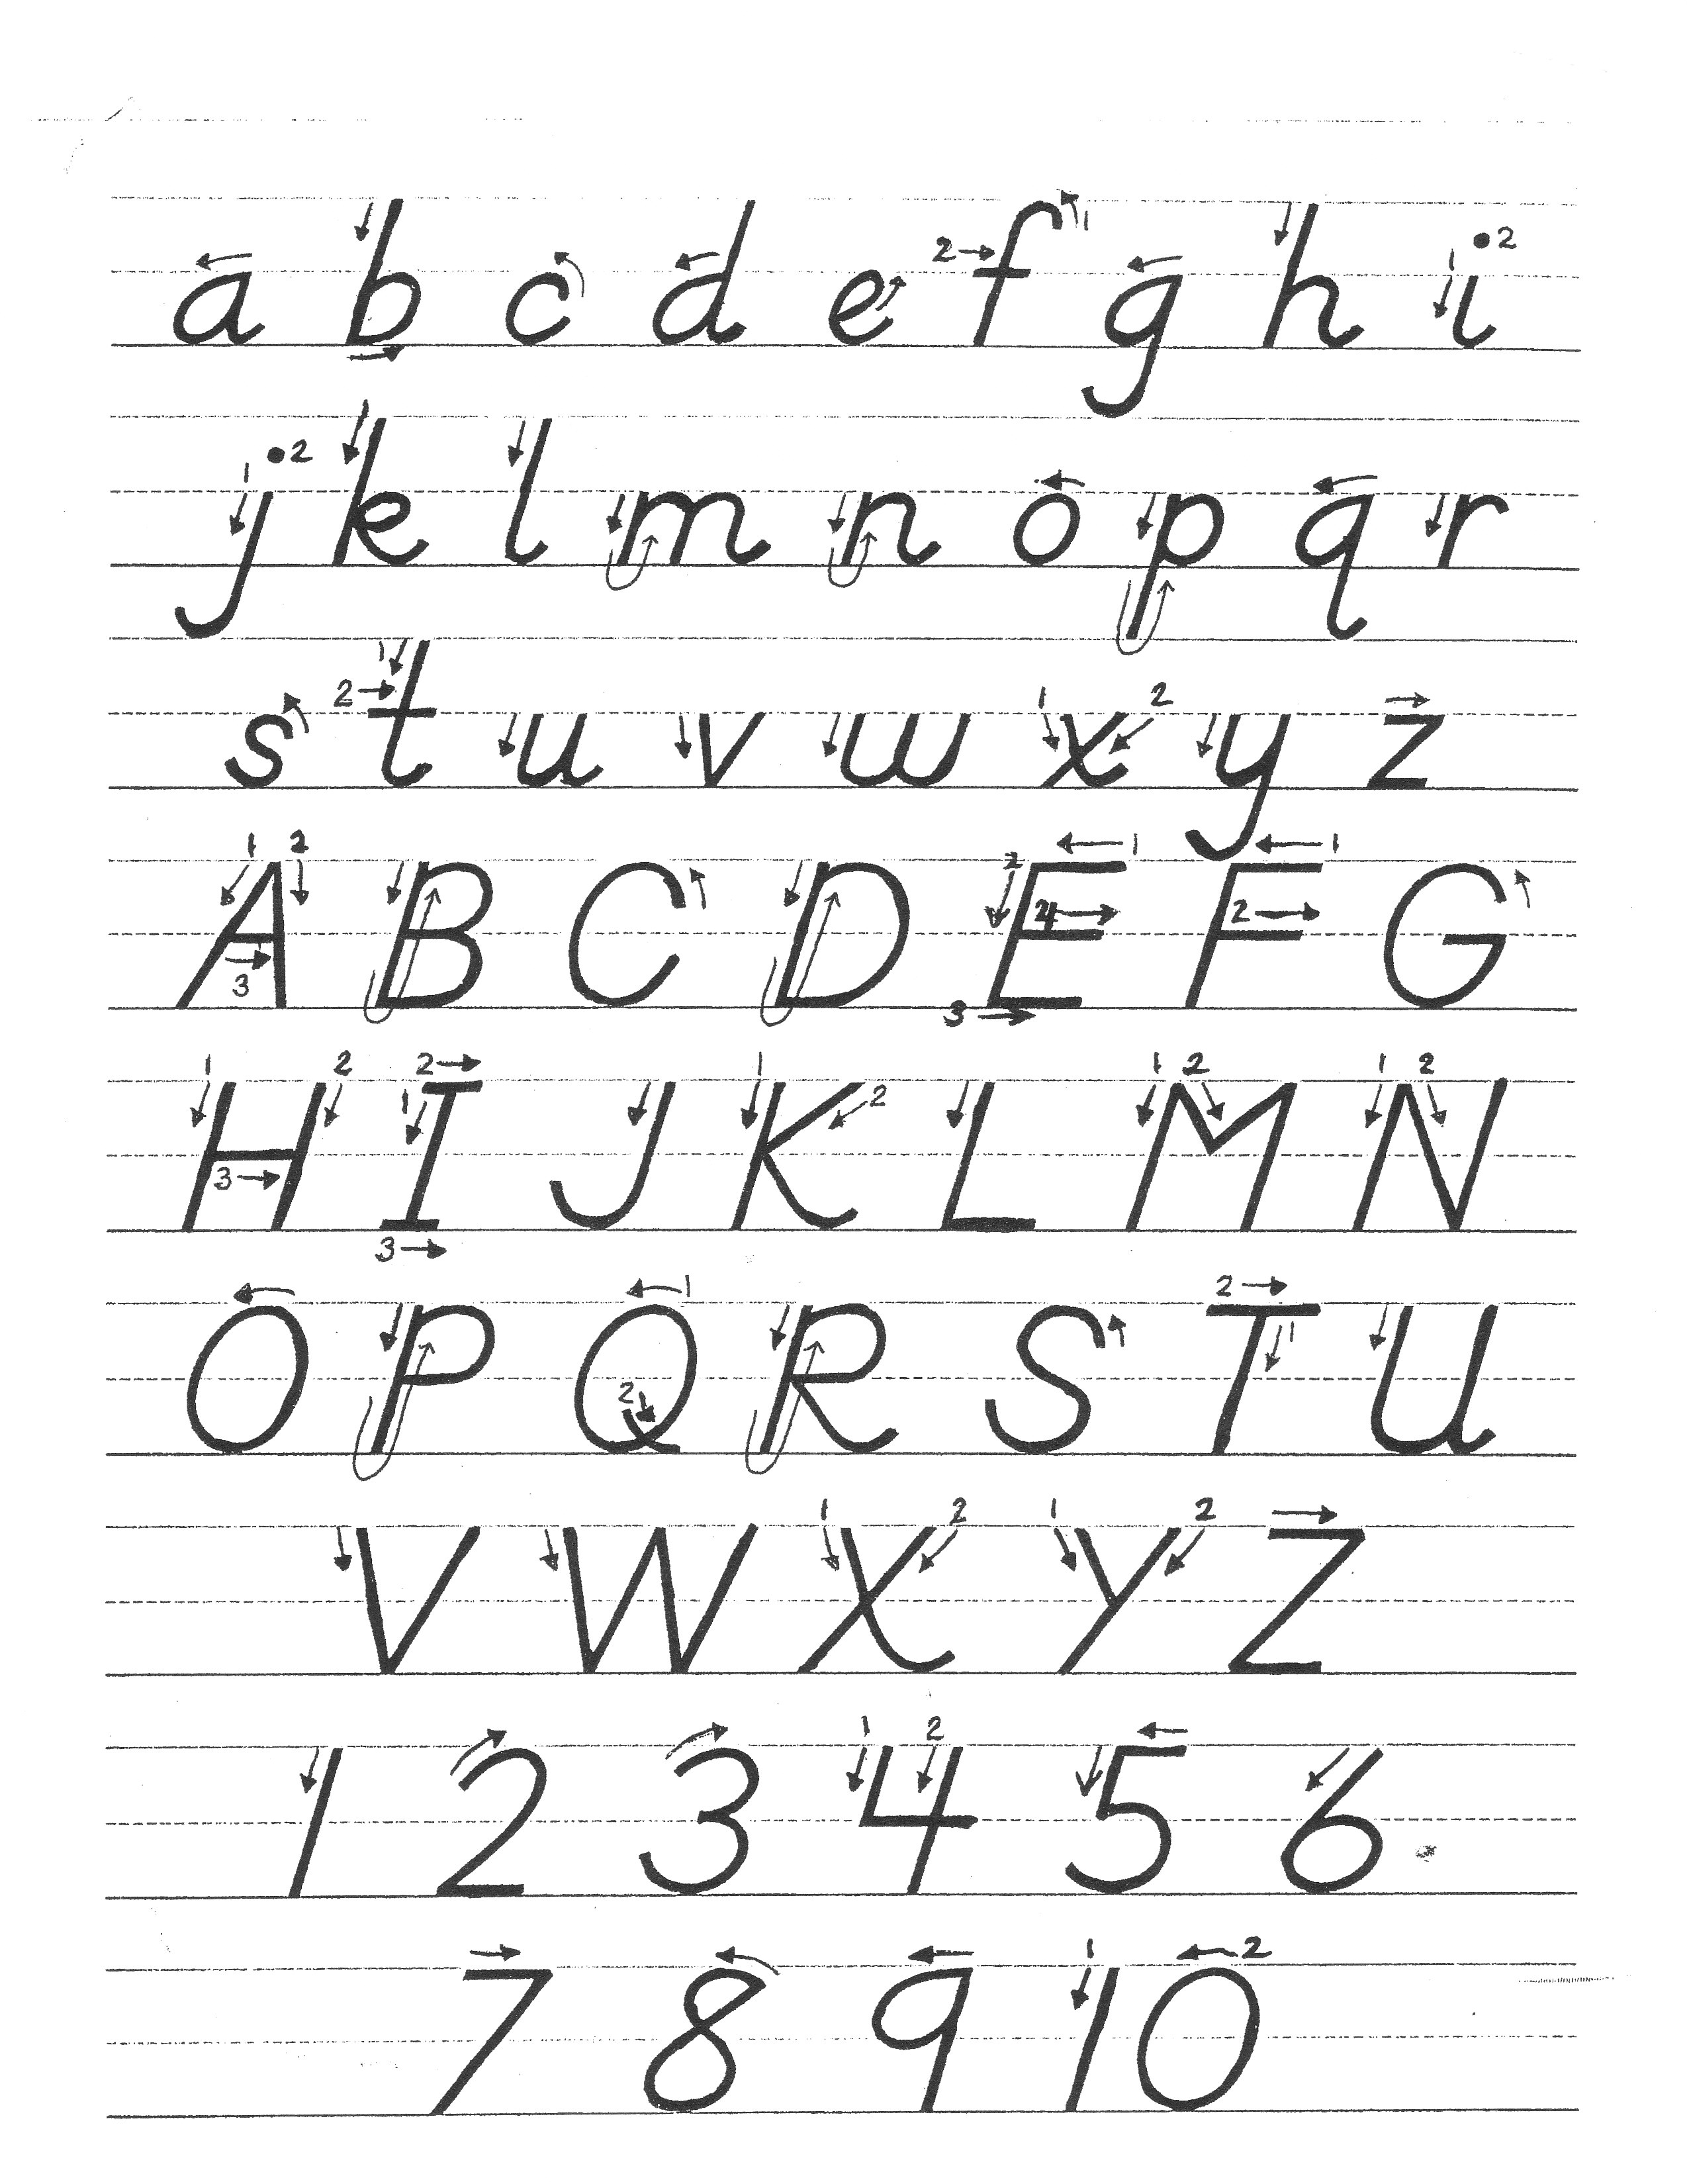 Worksheets Handwriting Without Tears Worksheet printable letter formation sheets choice image samples format practice gallery printables handwriti